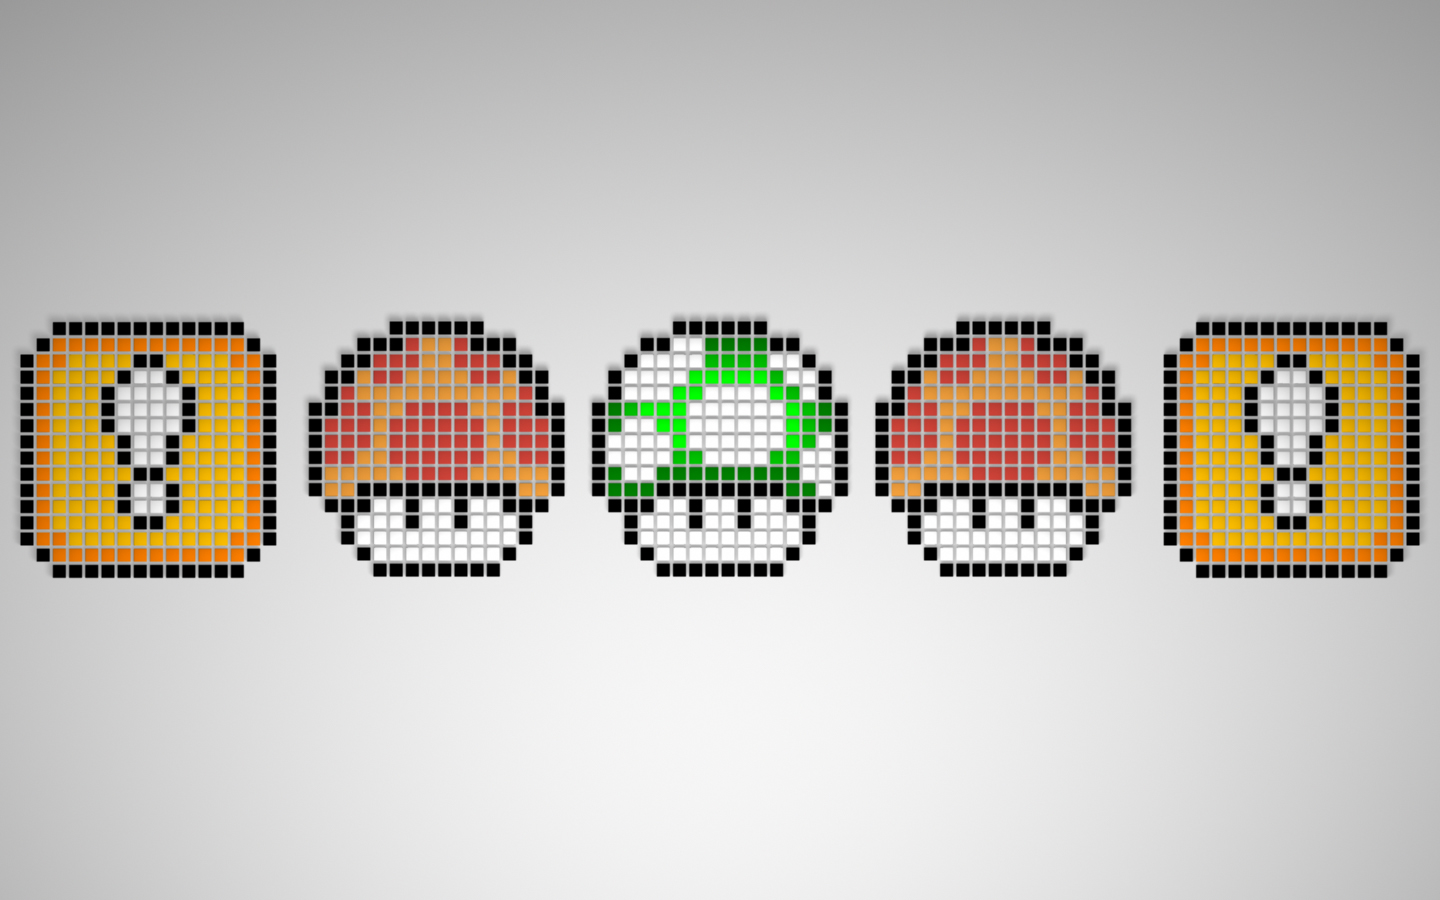 http://3.bp.blogspot.com/-NQqgiSJutx8/UMLMUs22fGI/AAAAAAAAAEY/2bEthqRnOWc/s1600/8+bit+mario+mushroom+1up+green+red+wallpaper+background.jpg